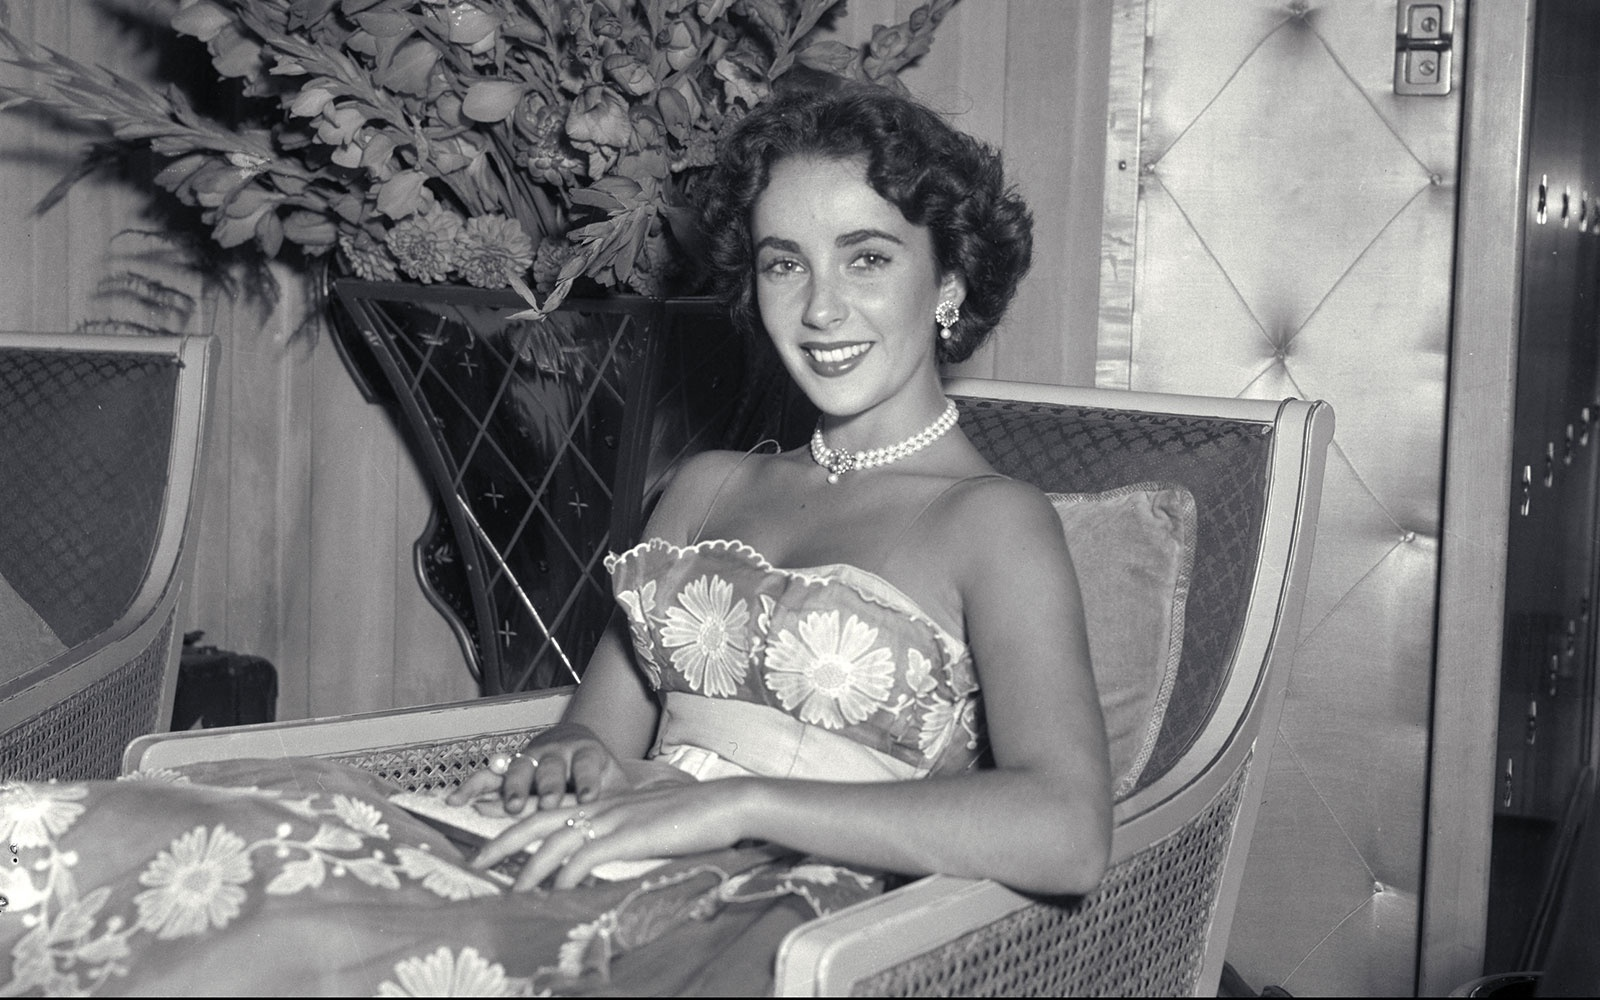 CUNARD0715-Liz_Taylor_in_evening_dress_10705.jpg